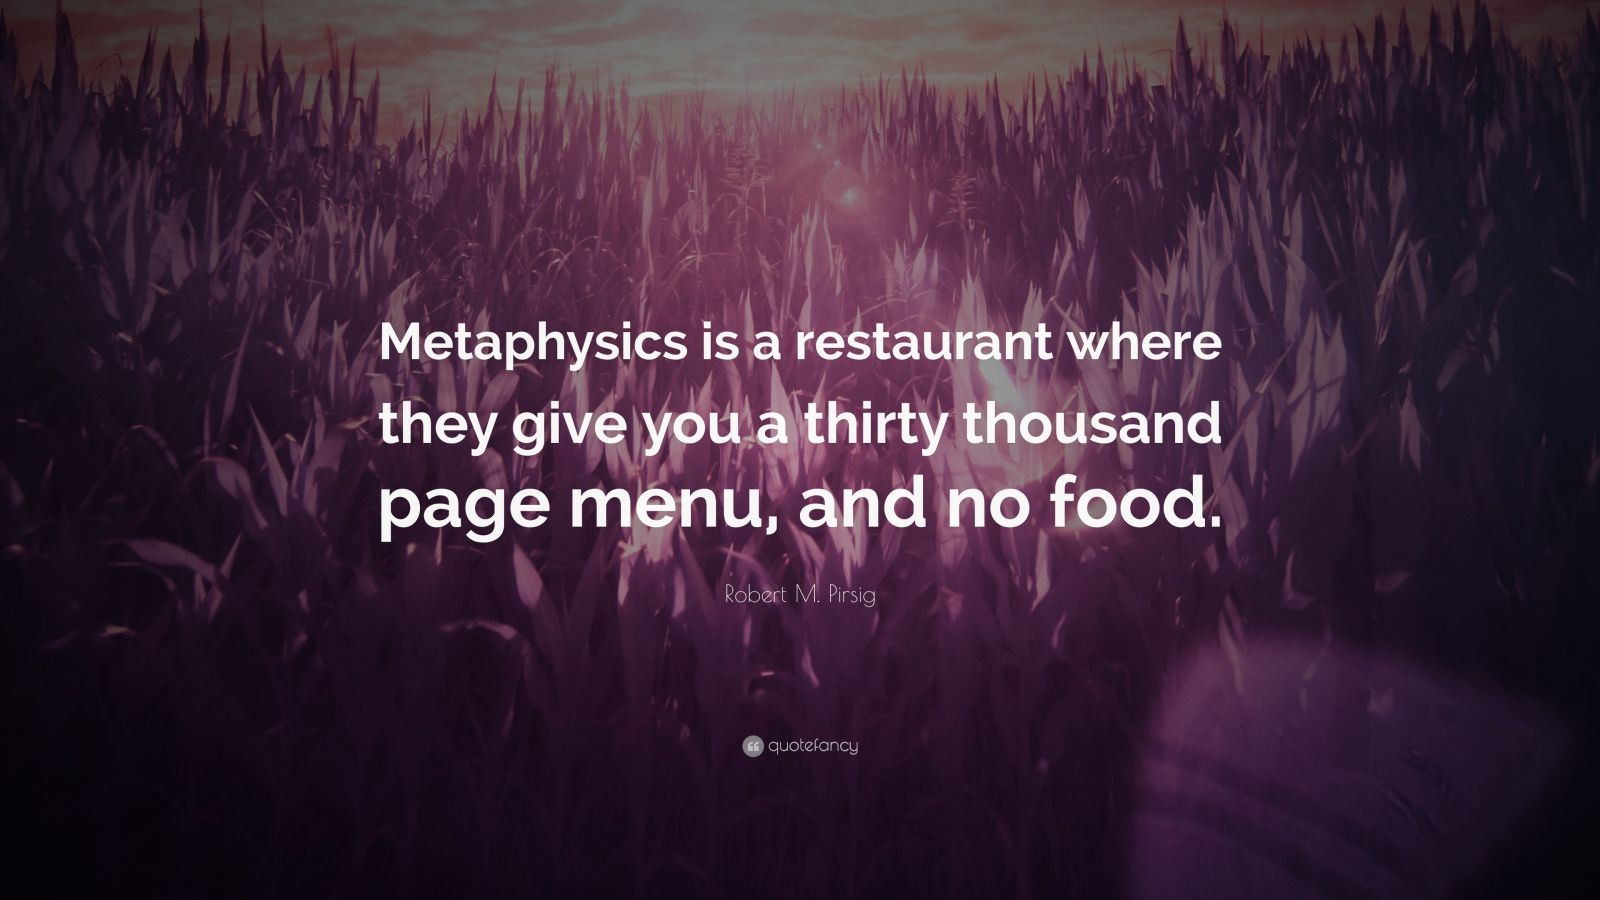 """Robert M. Pirsig Quote: """"Metaphysics is a restaurant where they give you a thirty thousand page menu, and no food."""""""